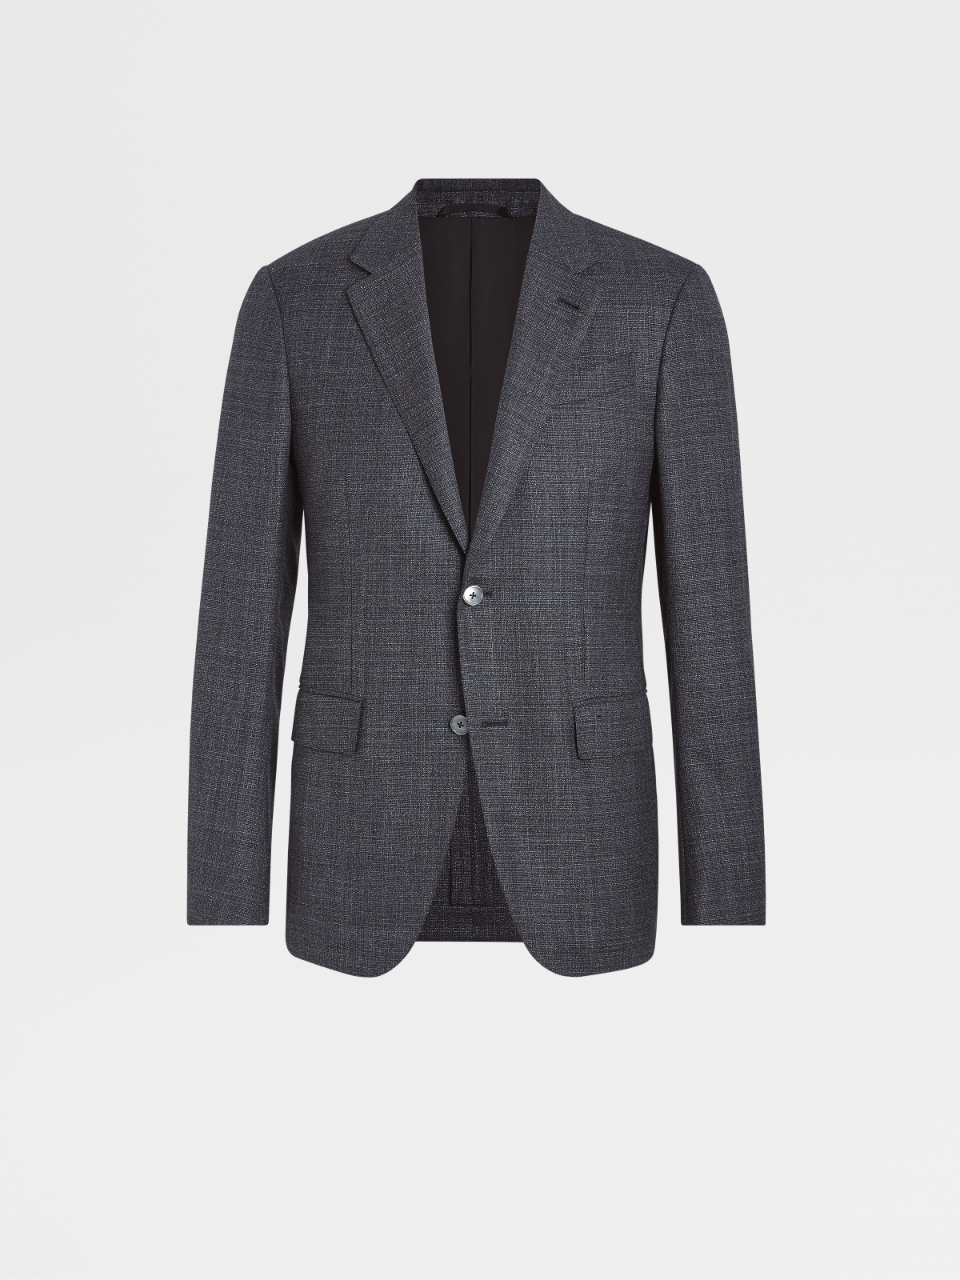 Trofeo Wool Jacket Drop 7